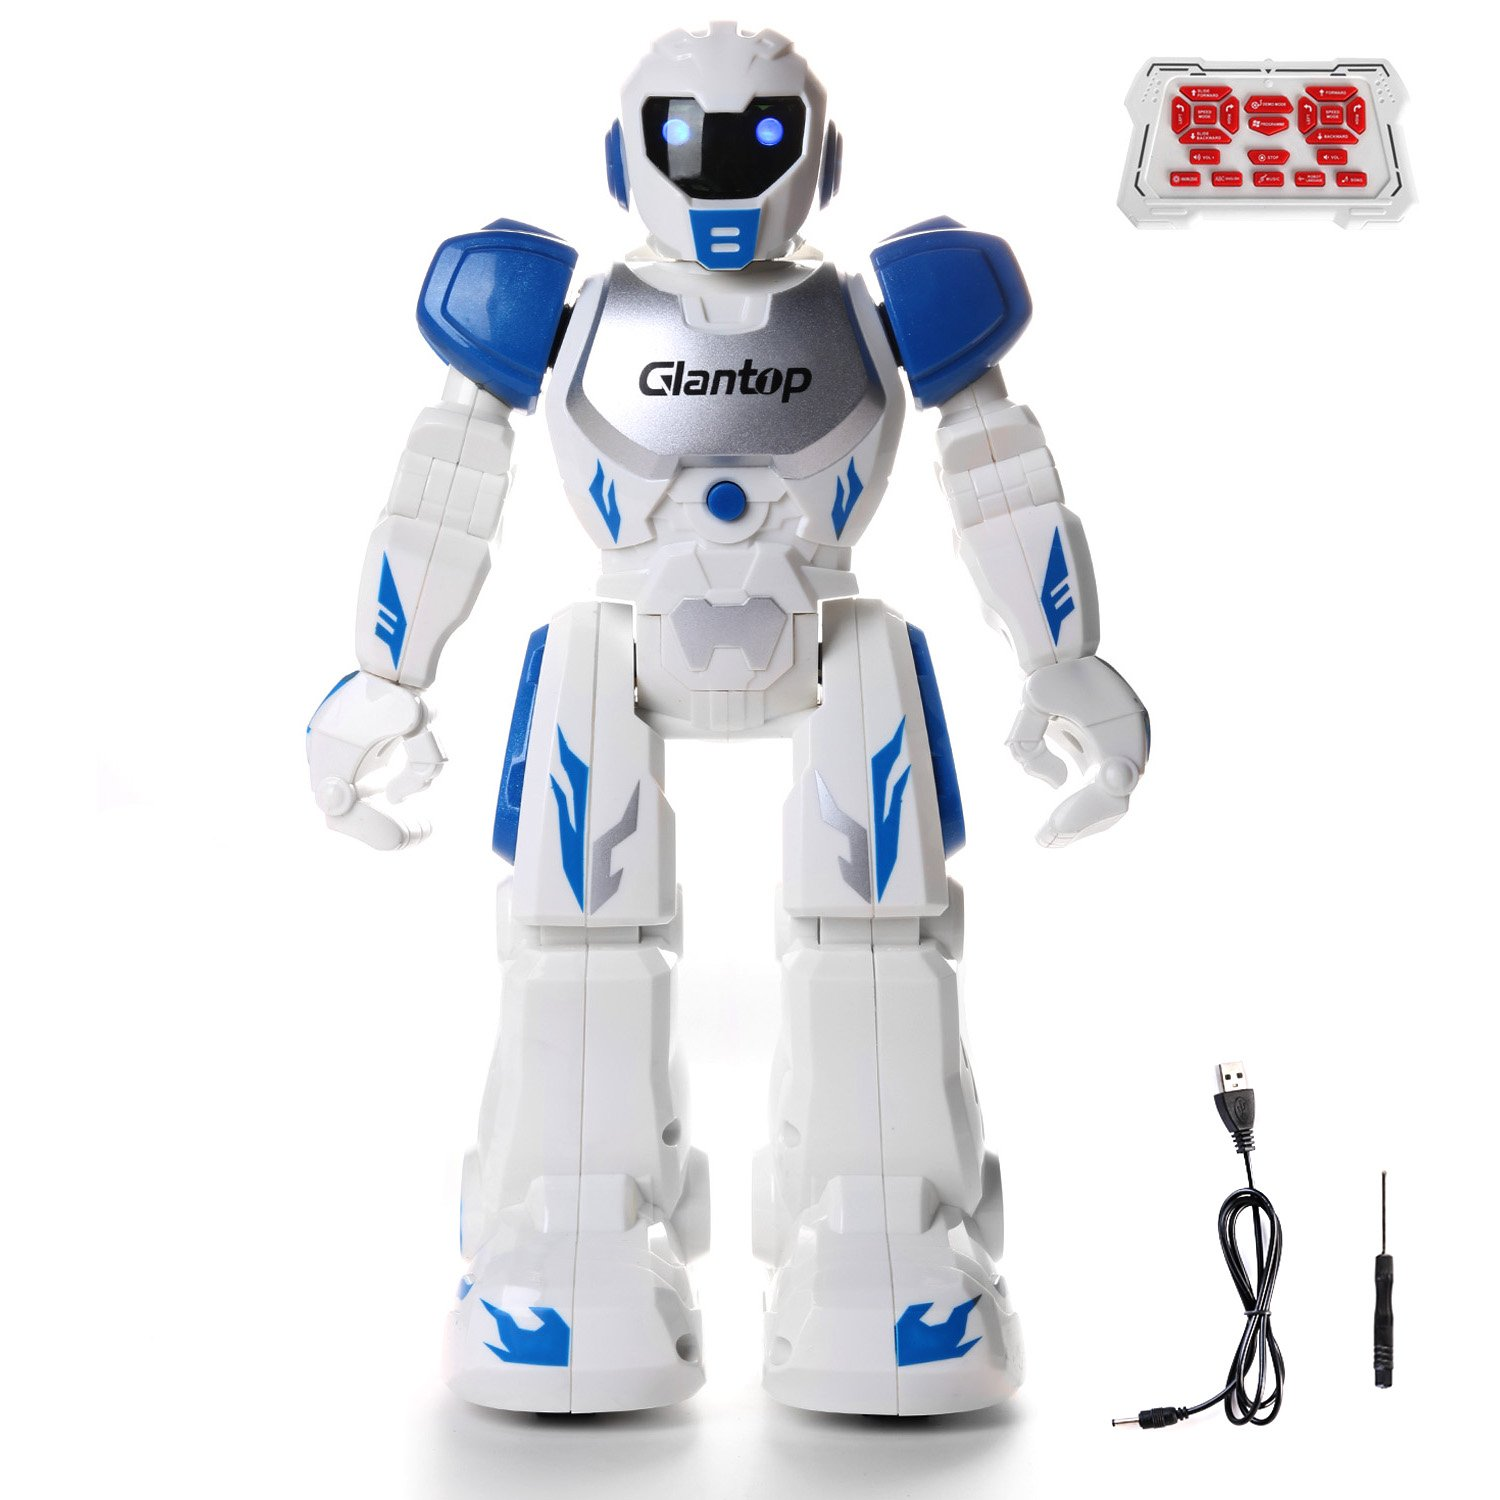 Glantop remote control RC robot- walking and dancing robot